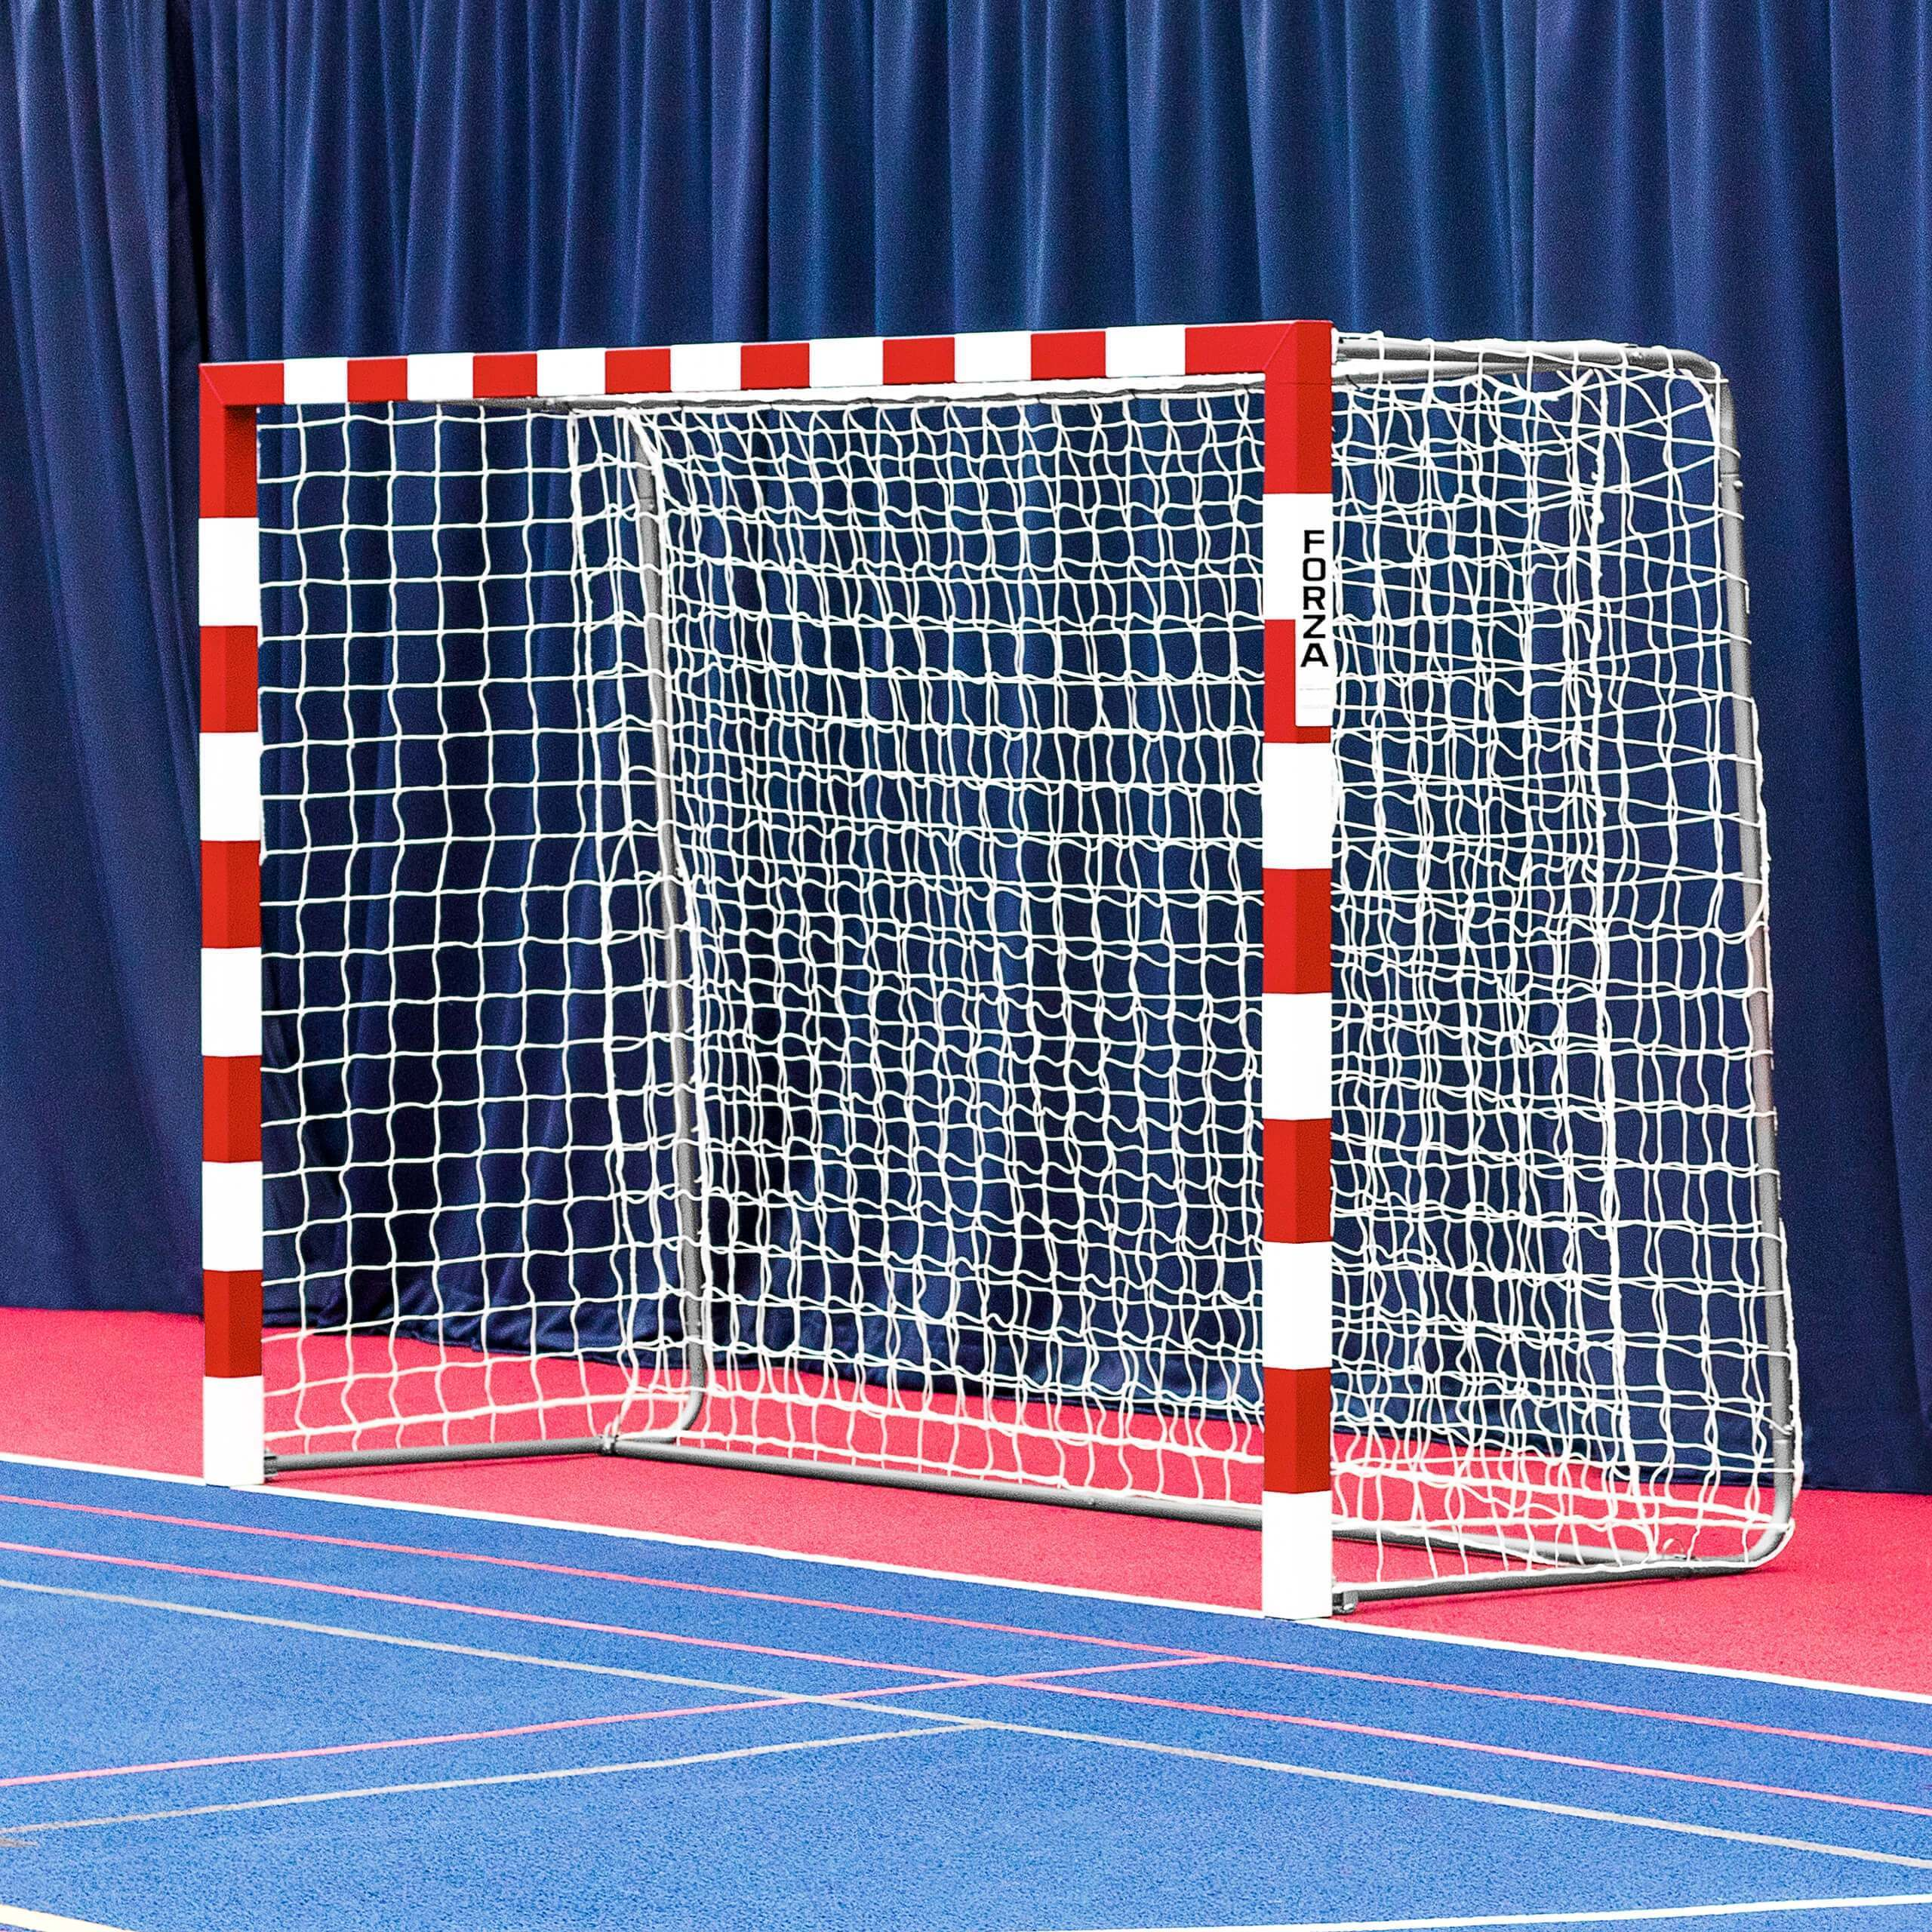 FORZA Alu80 Competition Handball Goals (Foldaway) - Red & White (Pair)